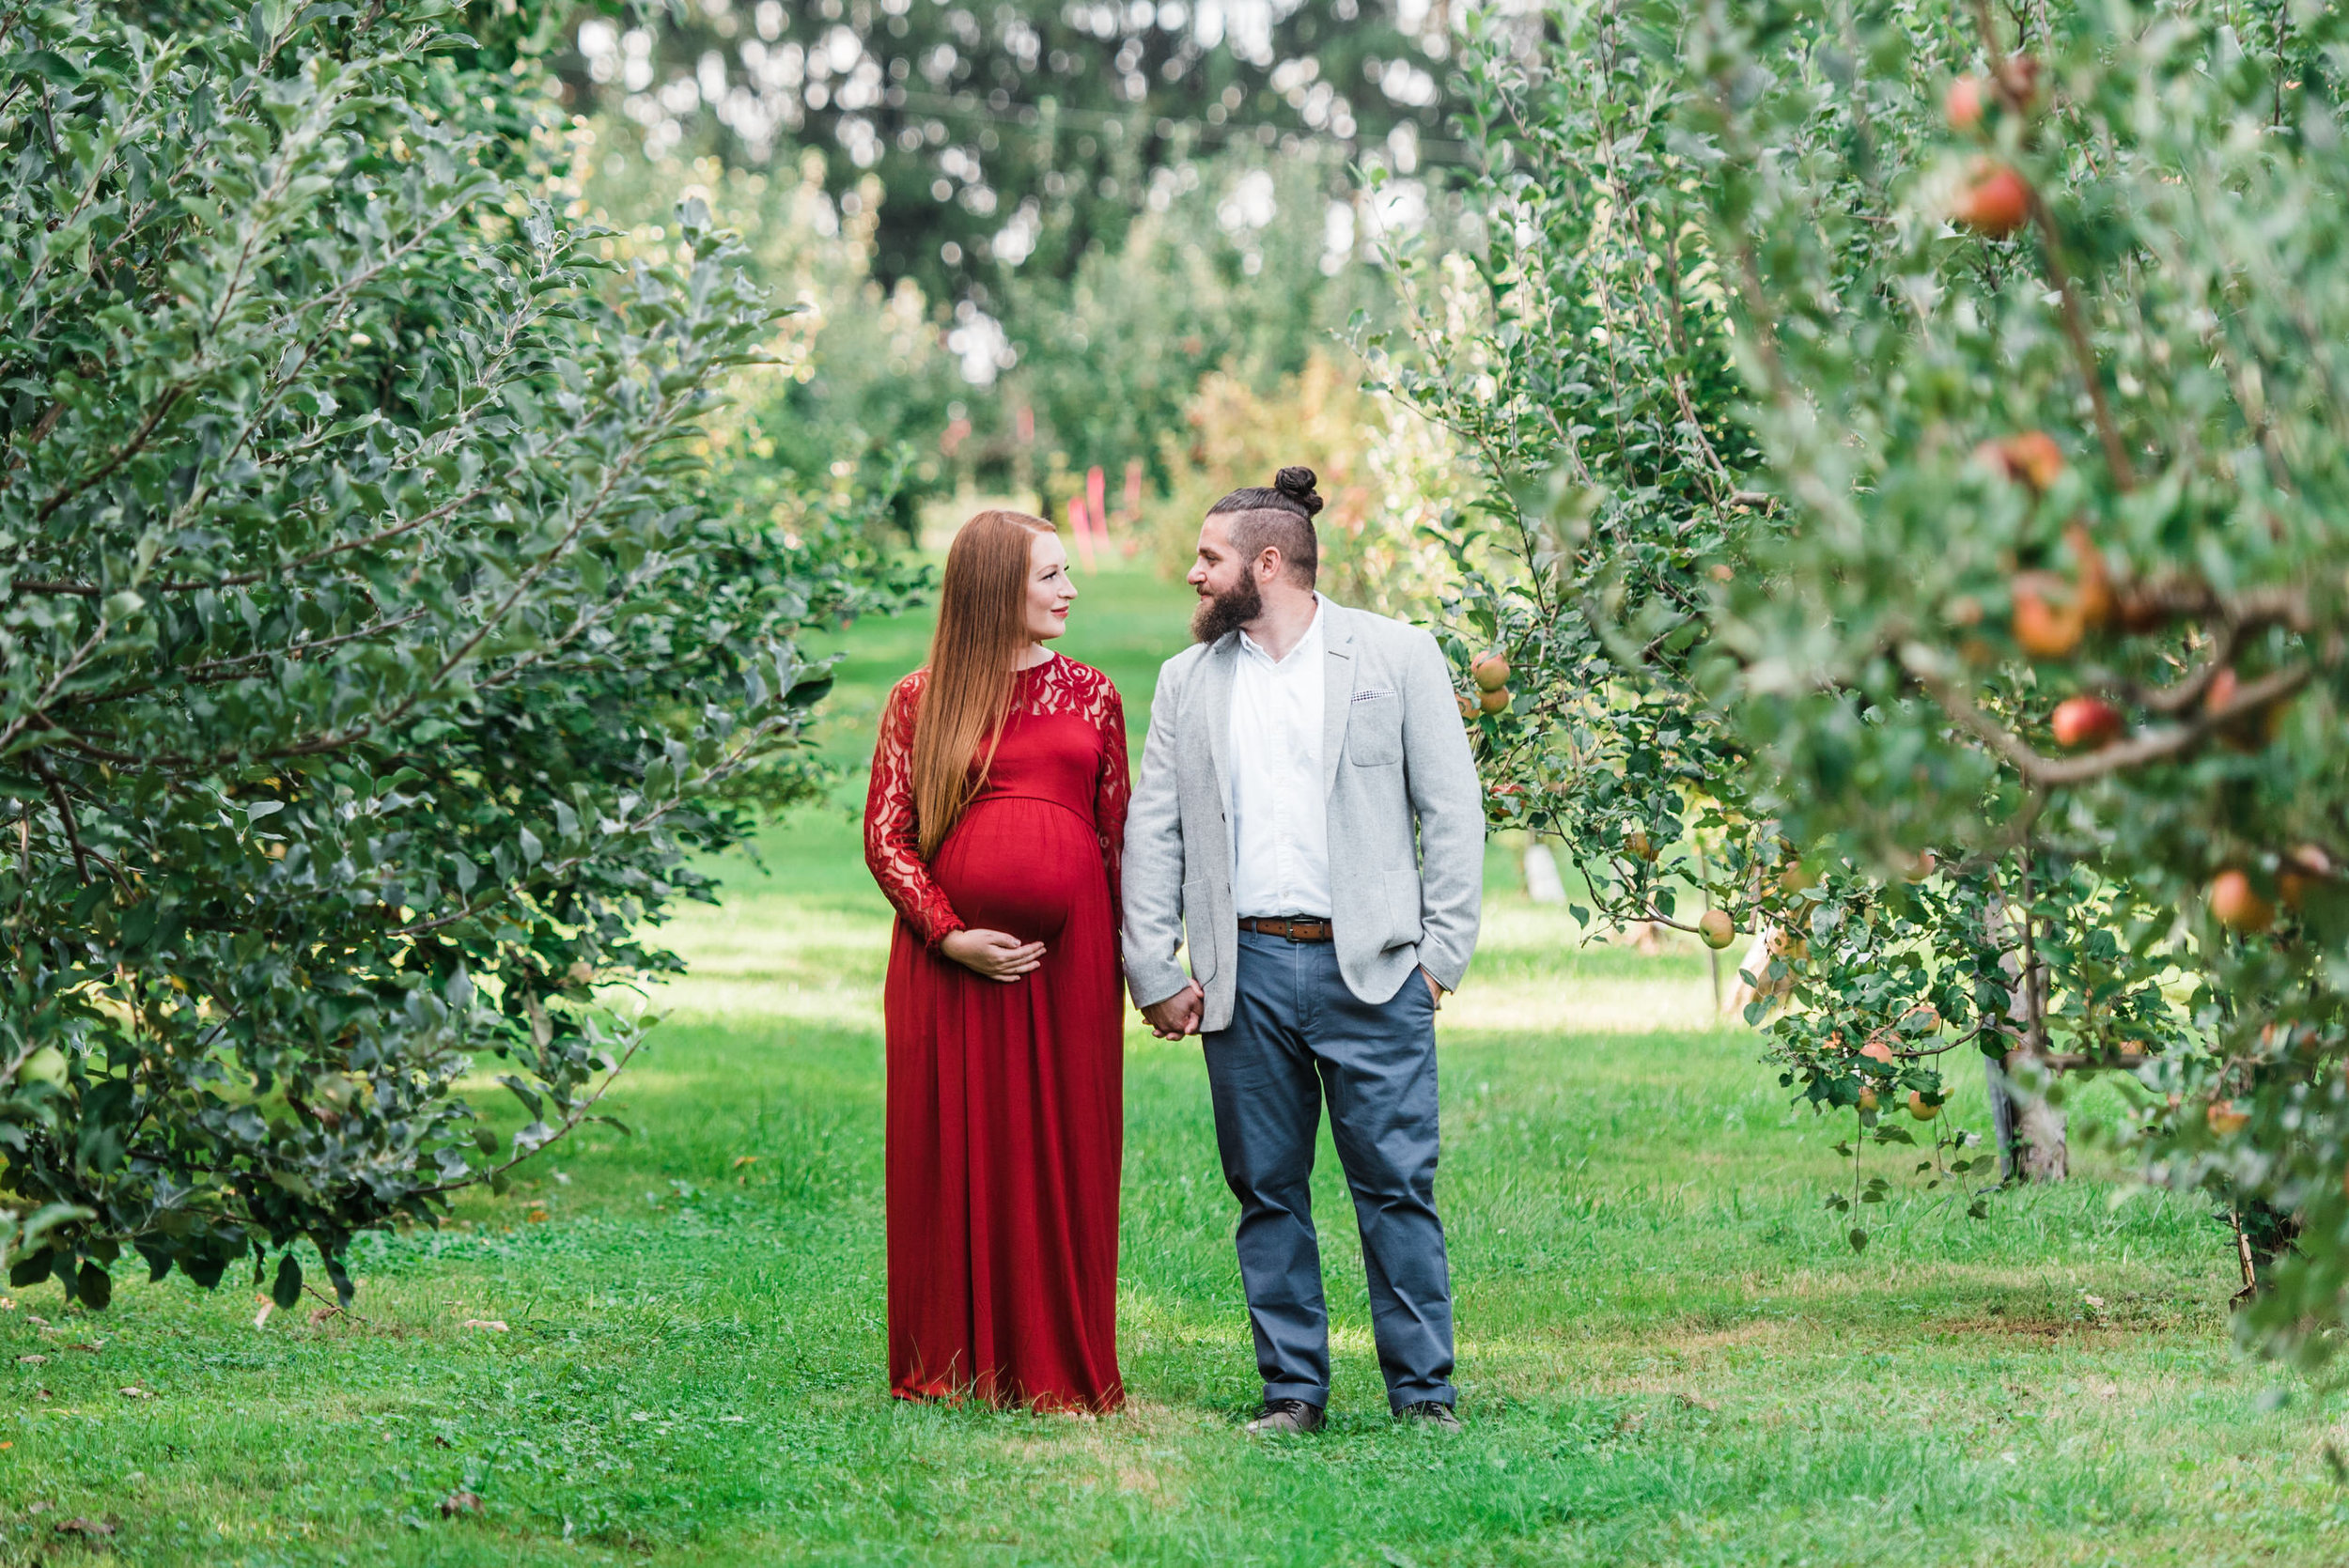 pittsburgh-maternity-photographers-winery-apple-orchard-session_34.jpg